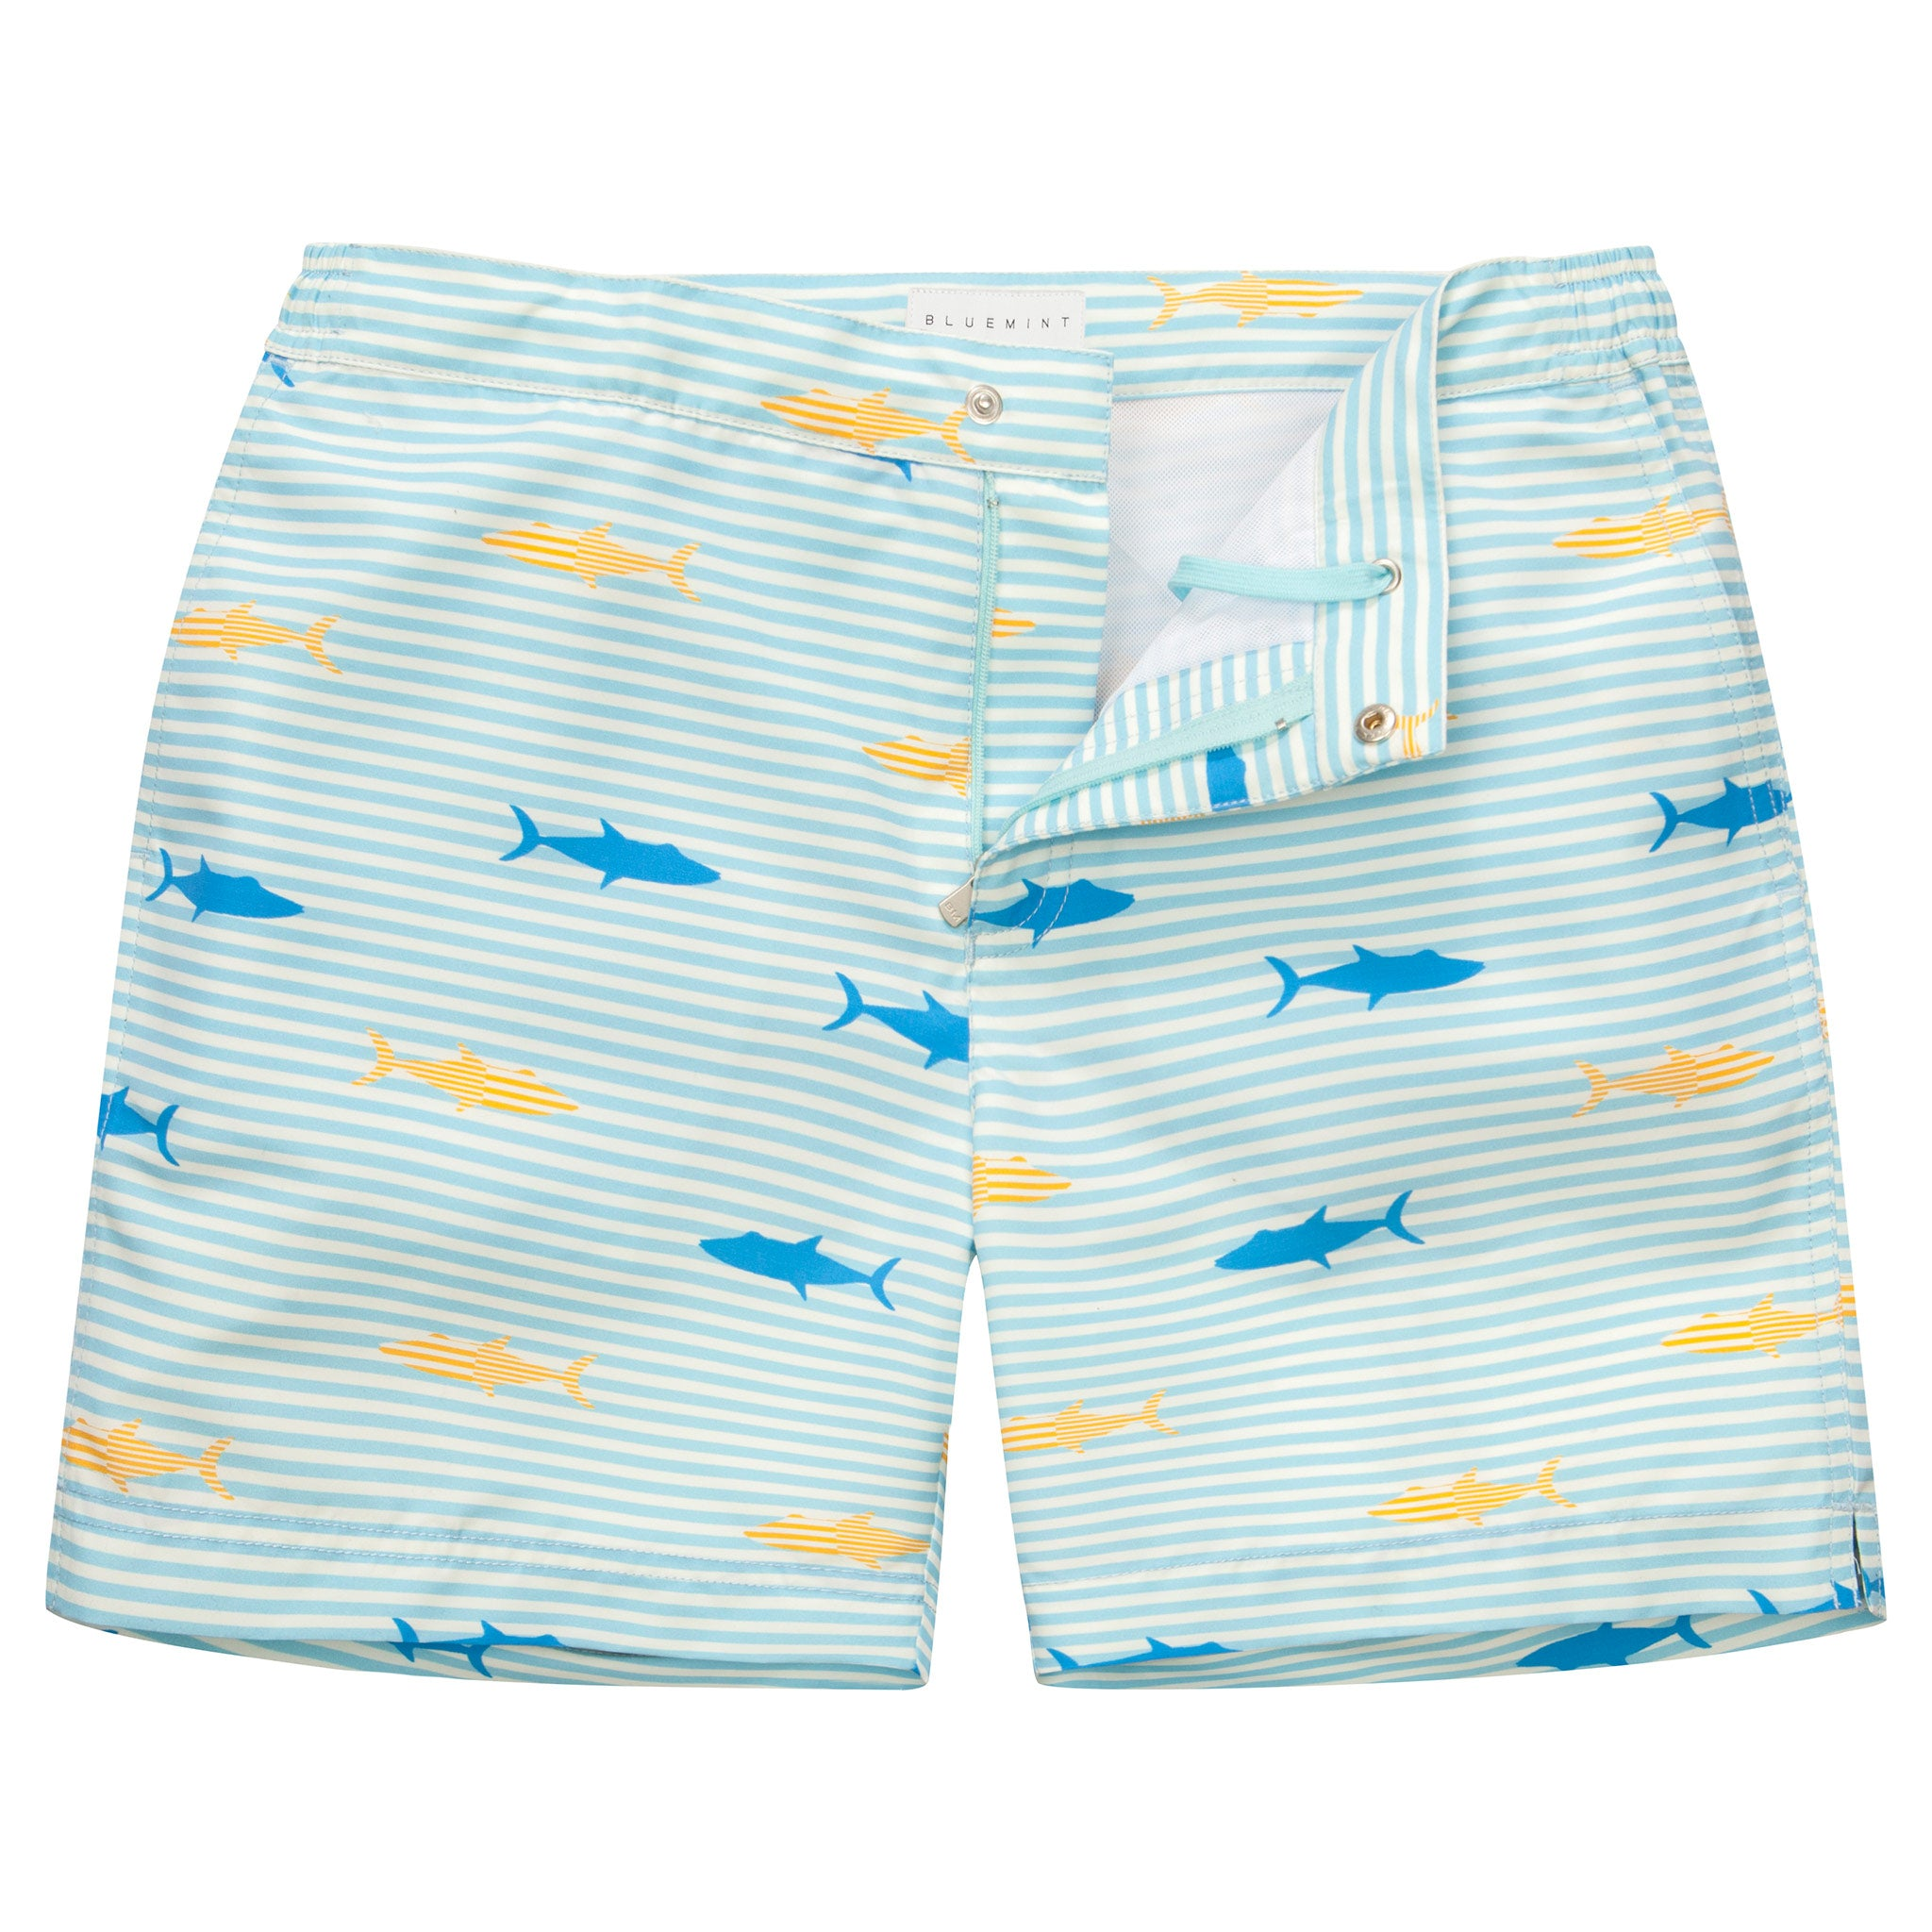 Bluemint Bond Badeshort Shark blau-weiss gestreift